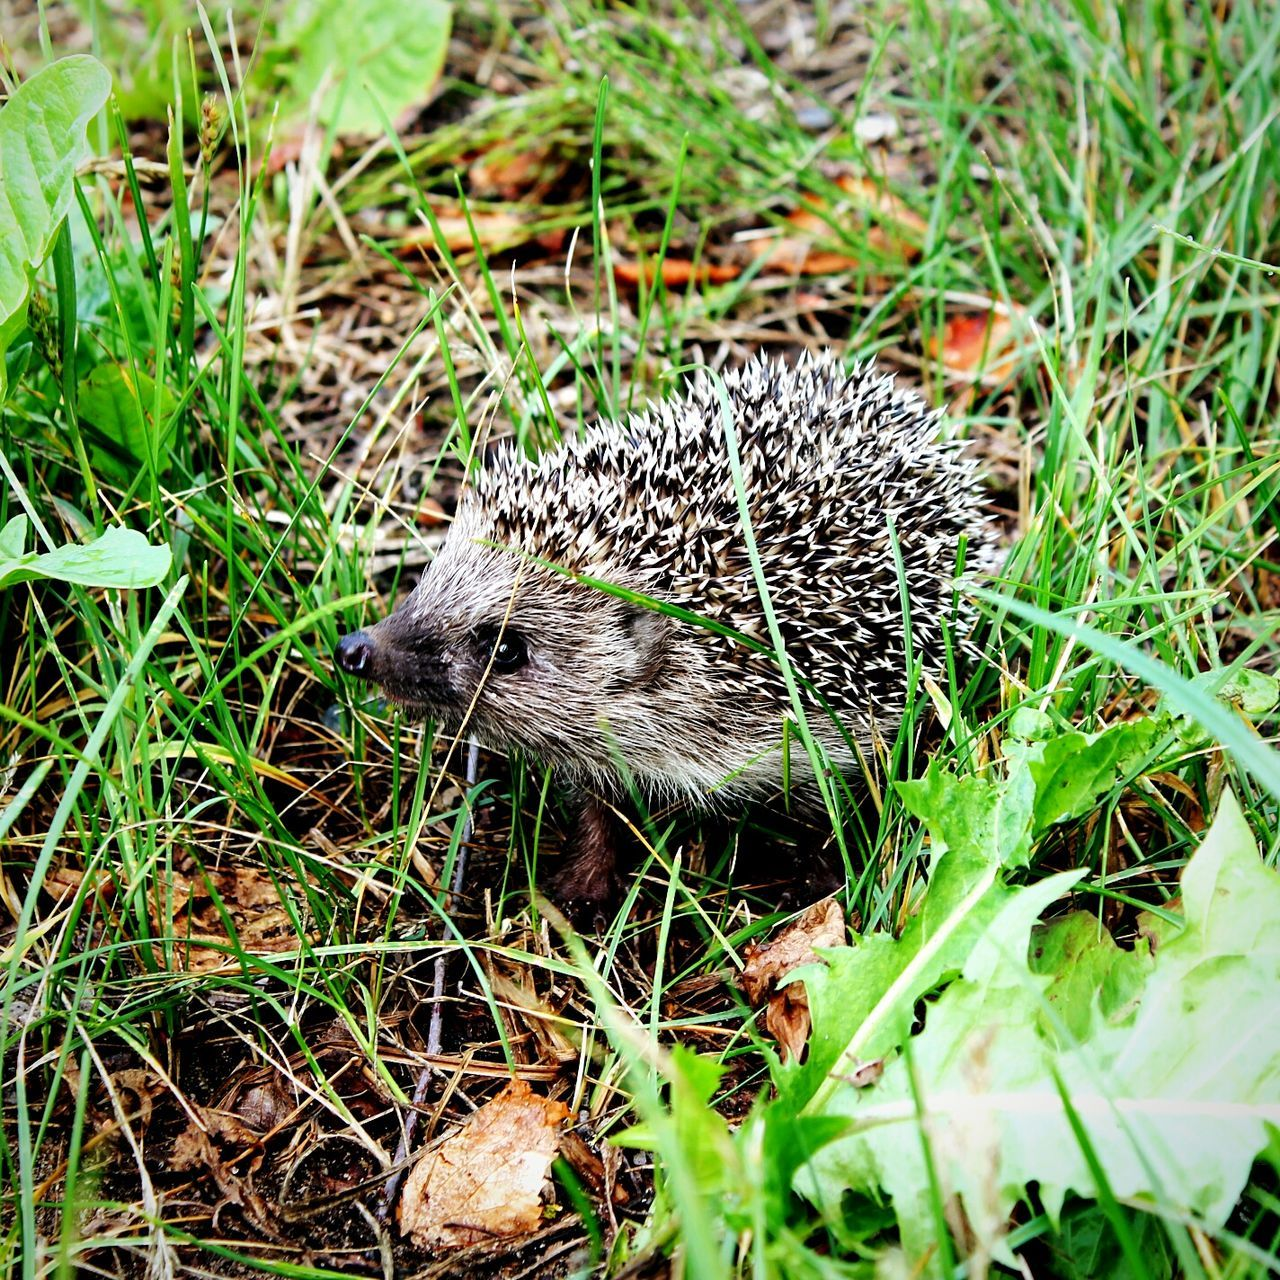 Animal Themes Animals In The Wild Nature Grass No People Outdoors Animal Wildlife Day Close-up Hedgehog Hedgehog In My Garden . Hedgehogs On The Road